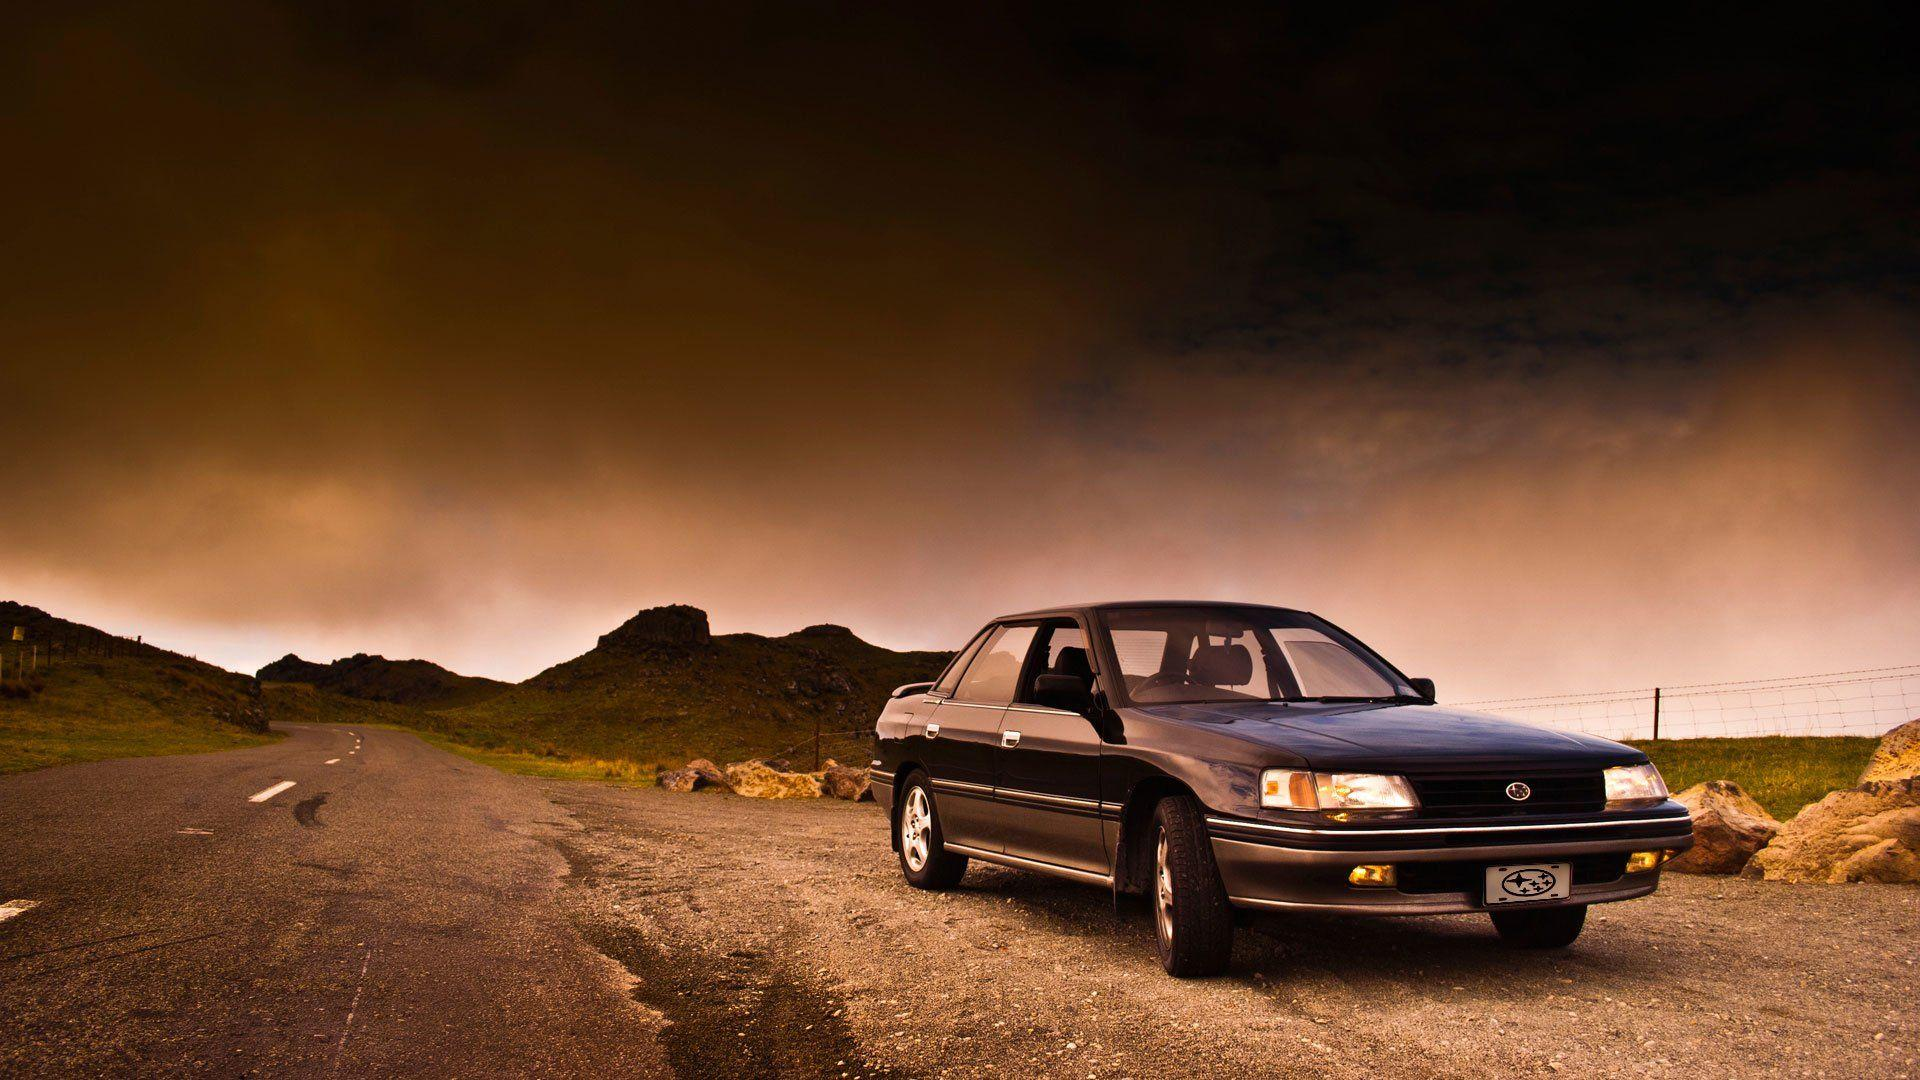 3 Subaru Legacy HD Wallpapers | Background Images - Wallpaper Abyss